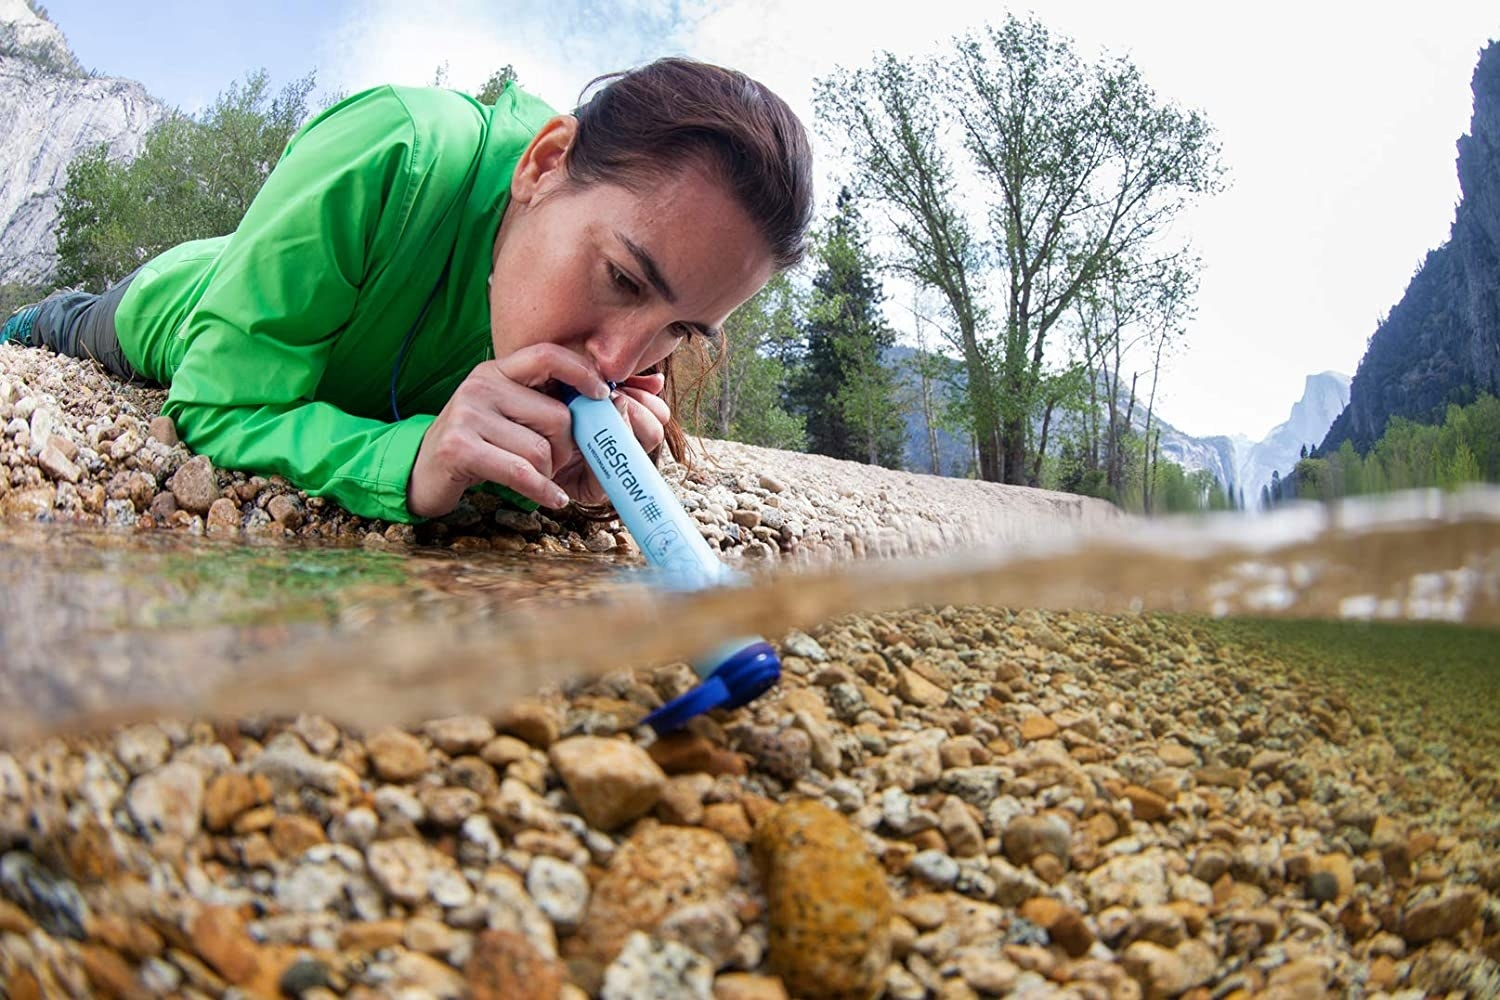 A person drinking river water out of the LifeStraw